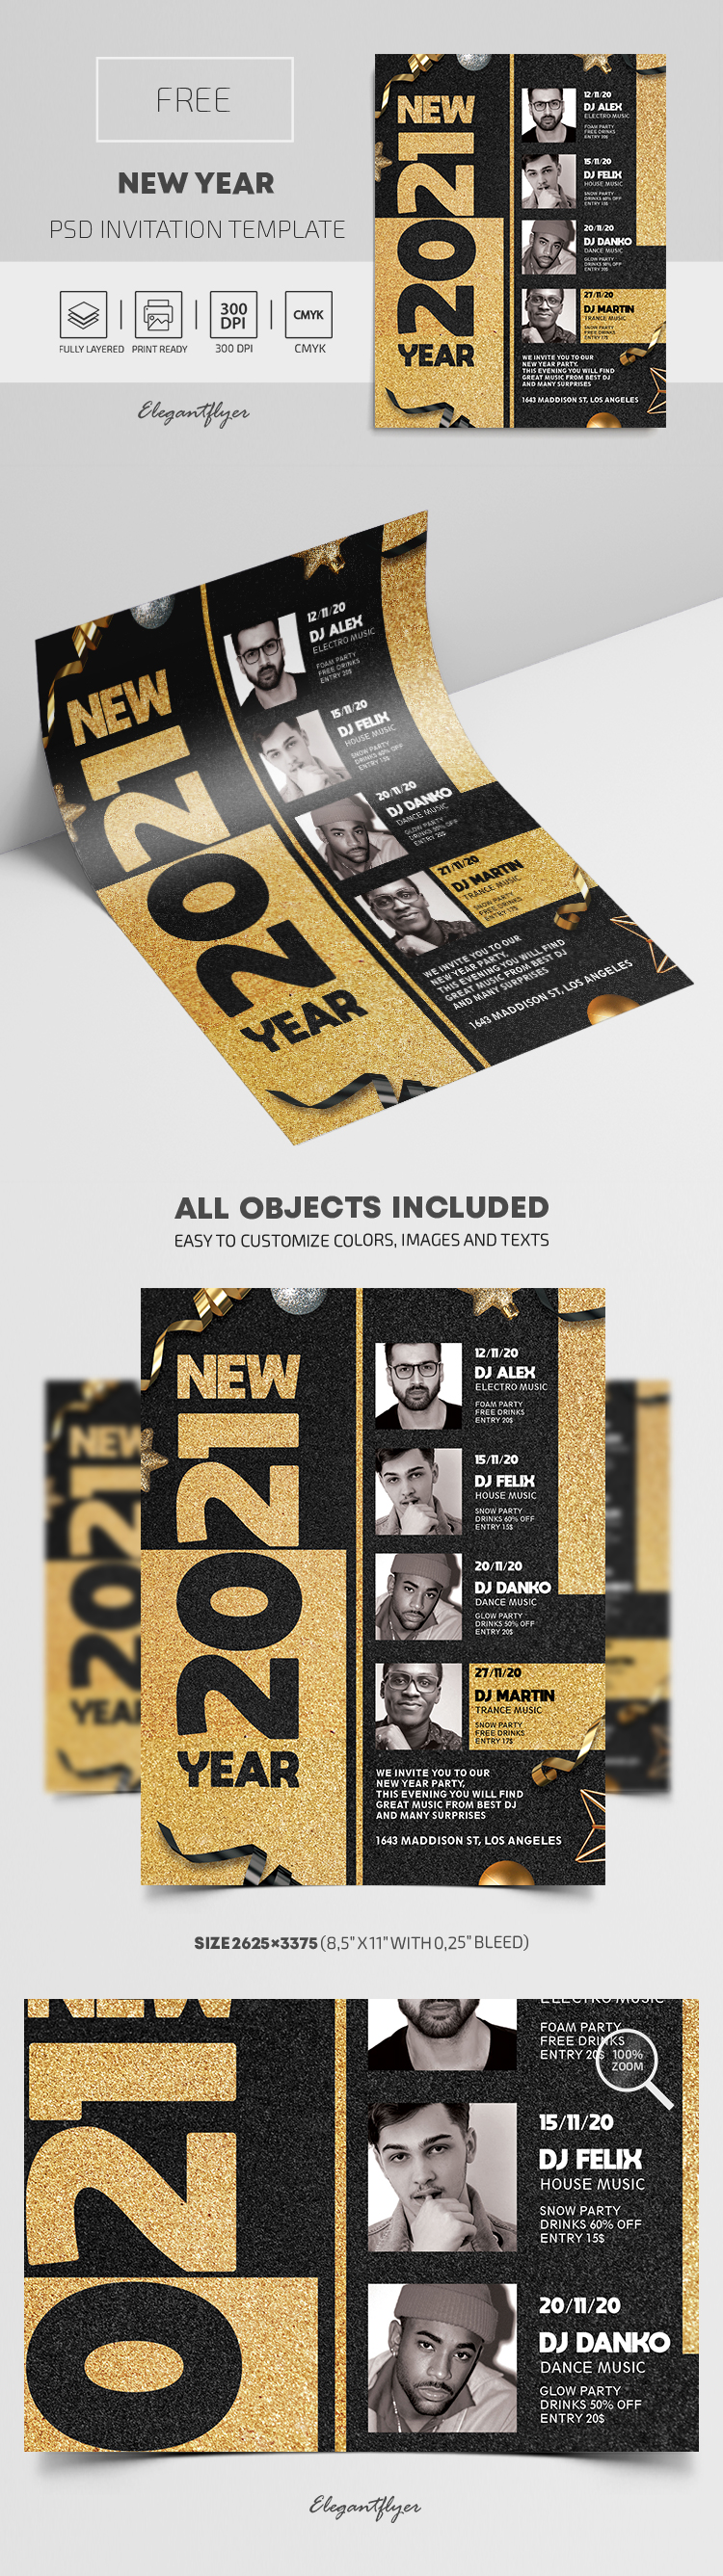 Free New Year Invitation PSD Template